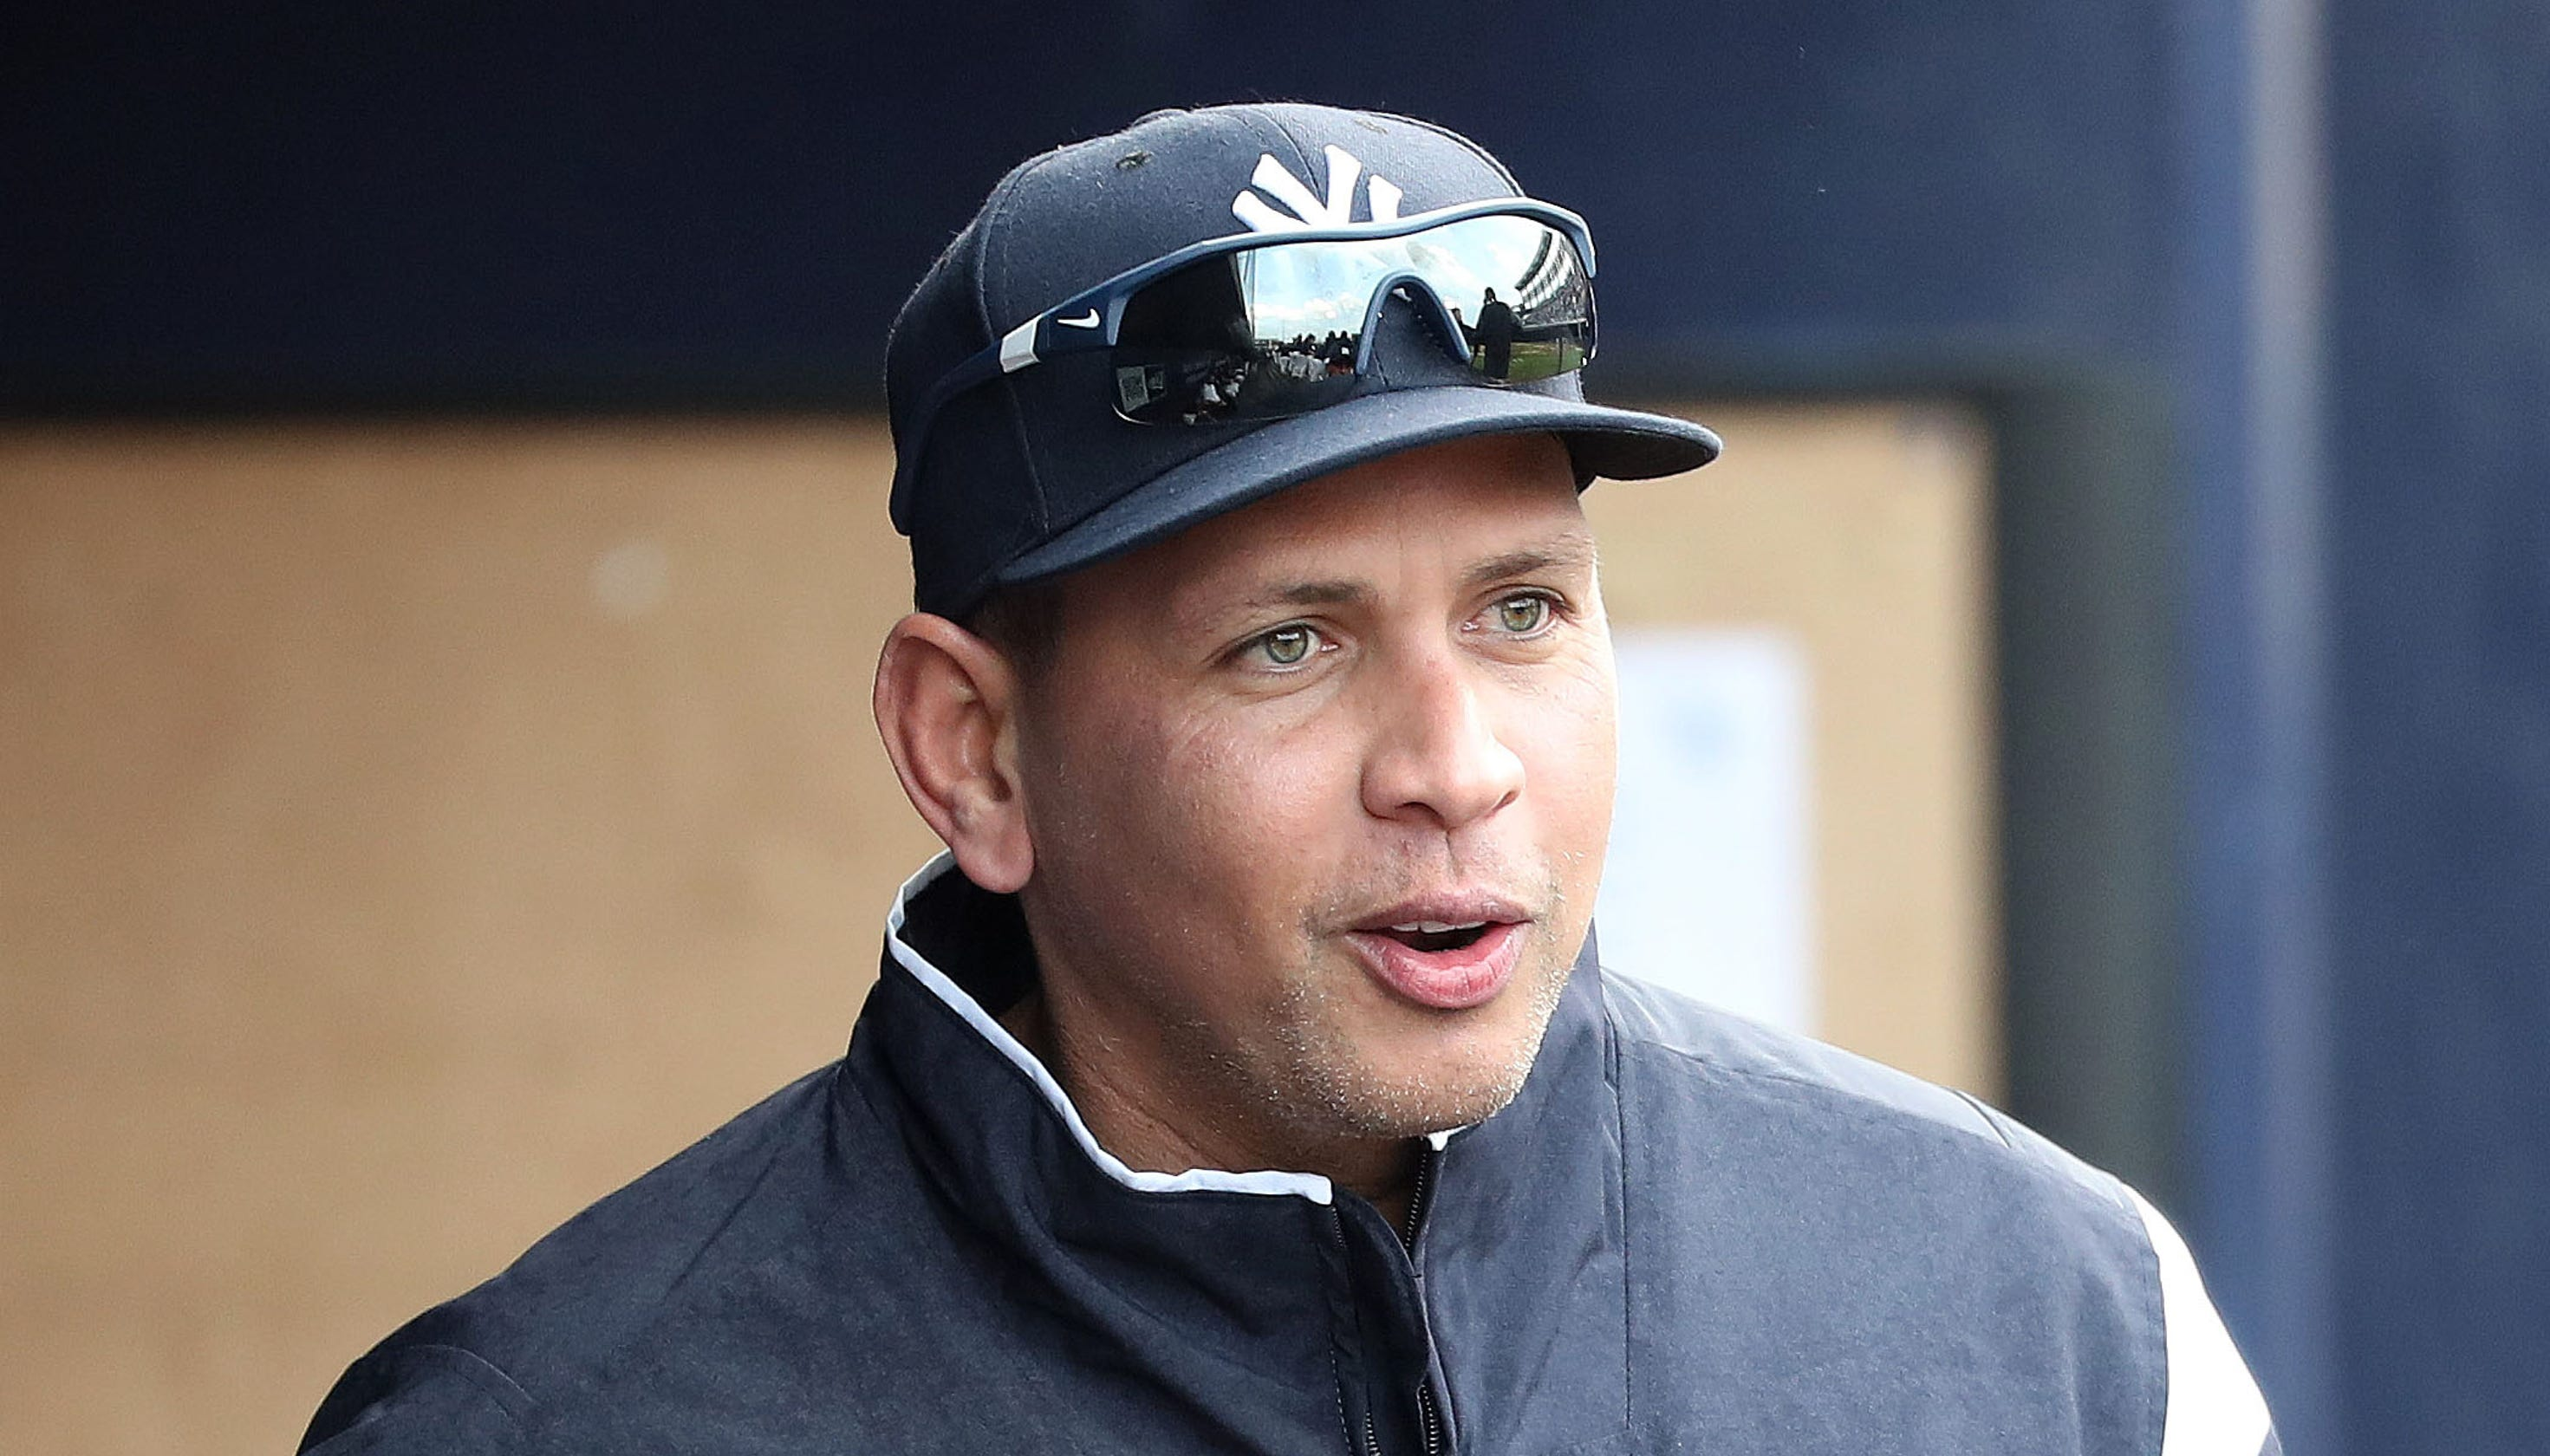 new concept bfef9 7d1f7 MLB playoffs: Alex Rodriguez wears full Red Sox uniform on air